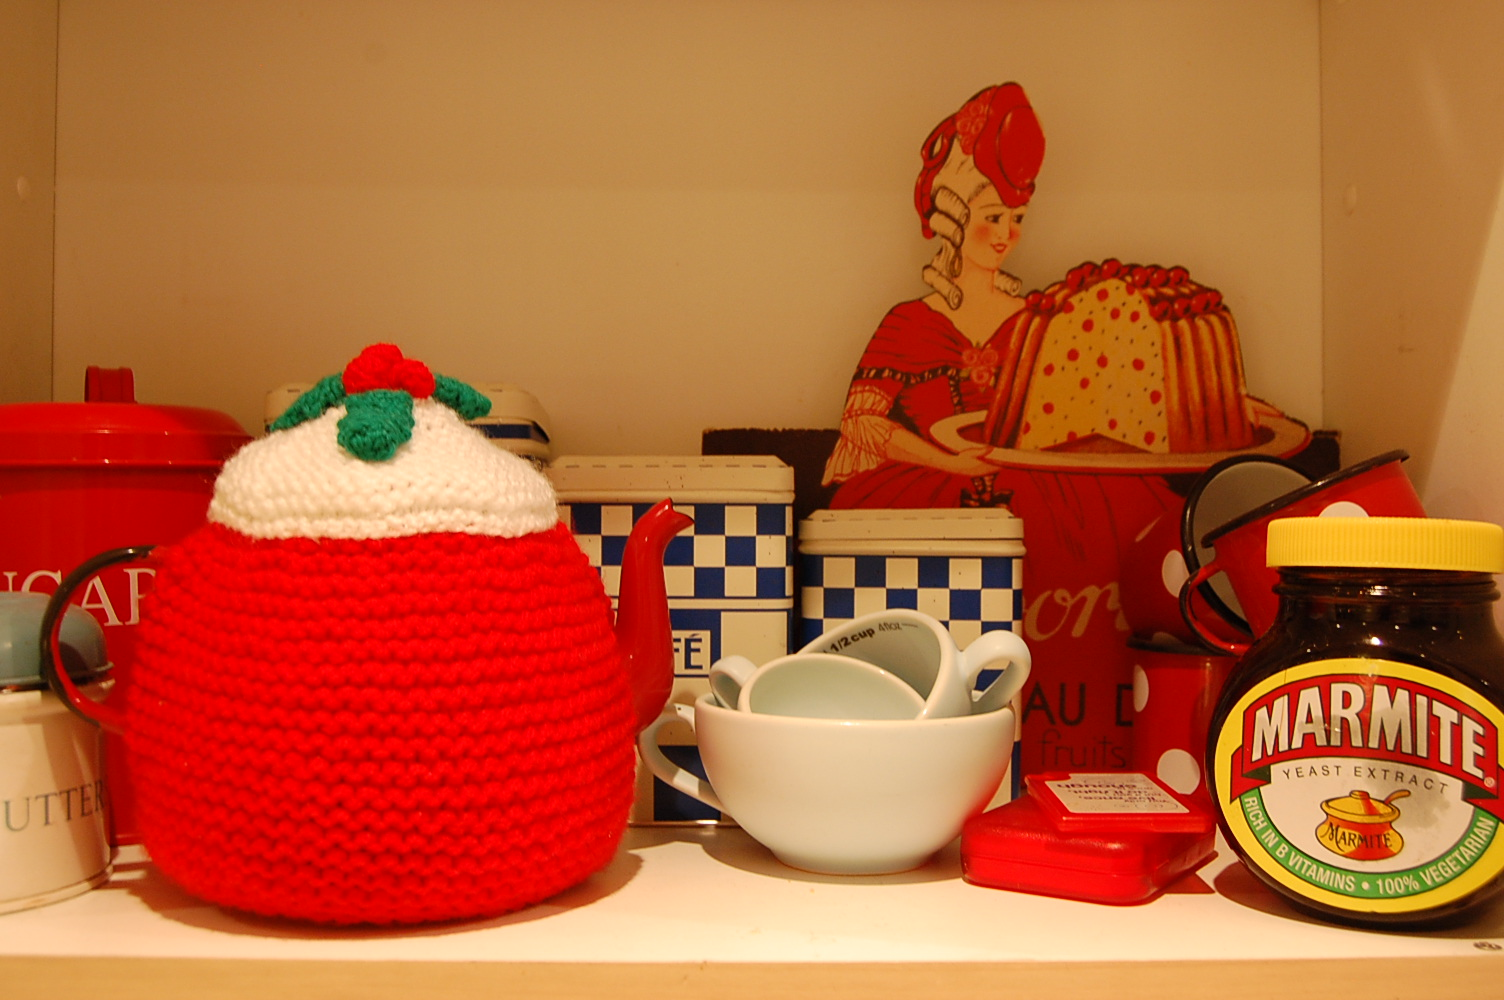 christmas cake knitted teacosy